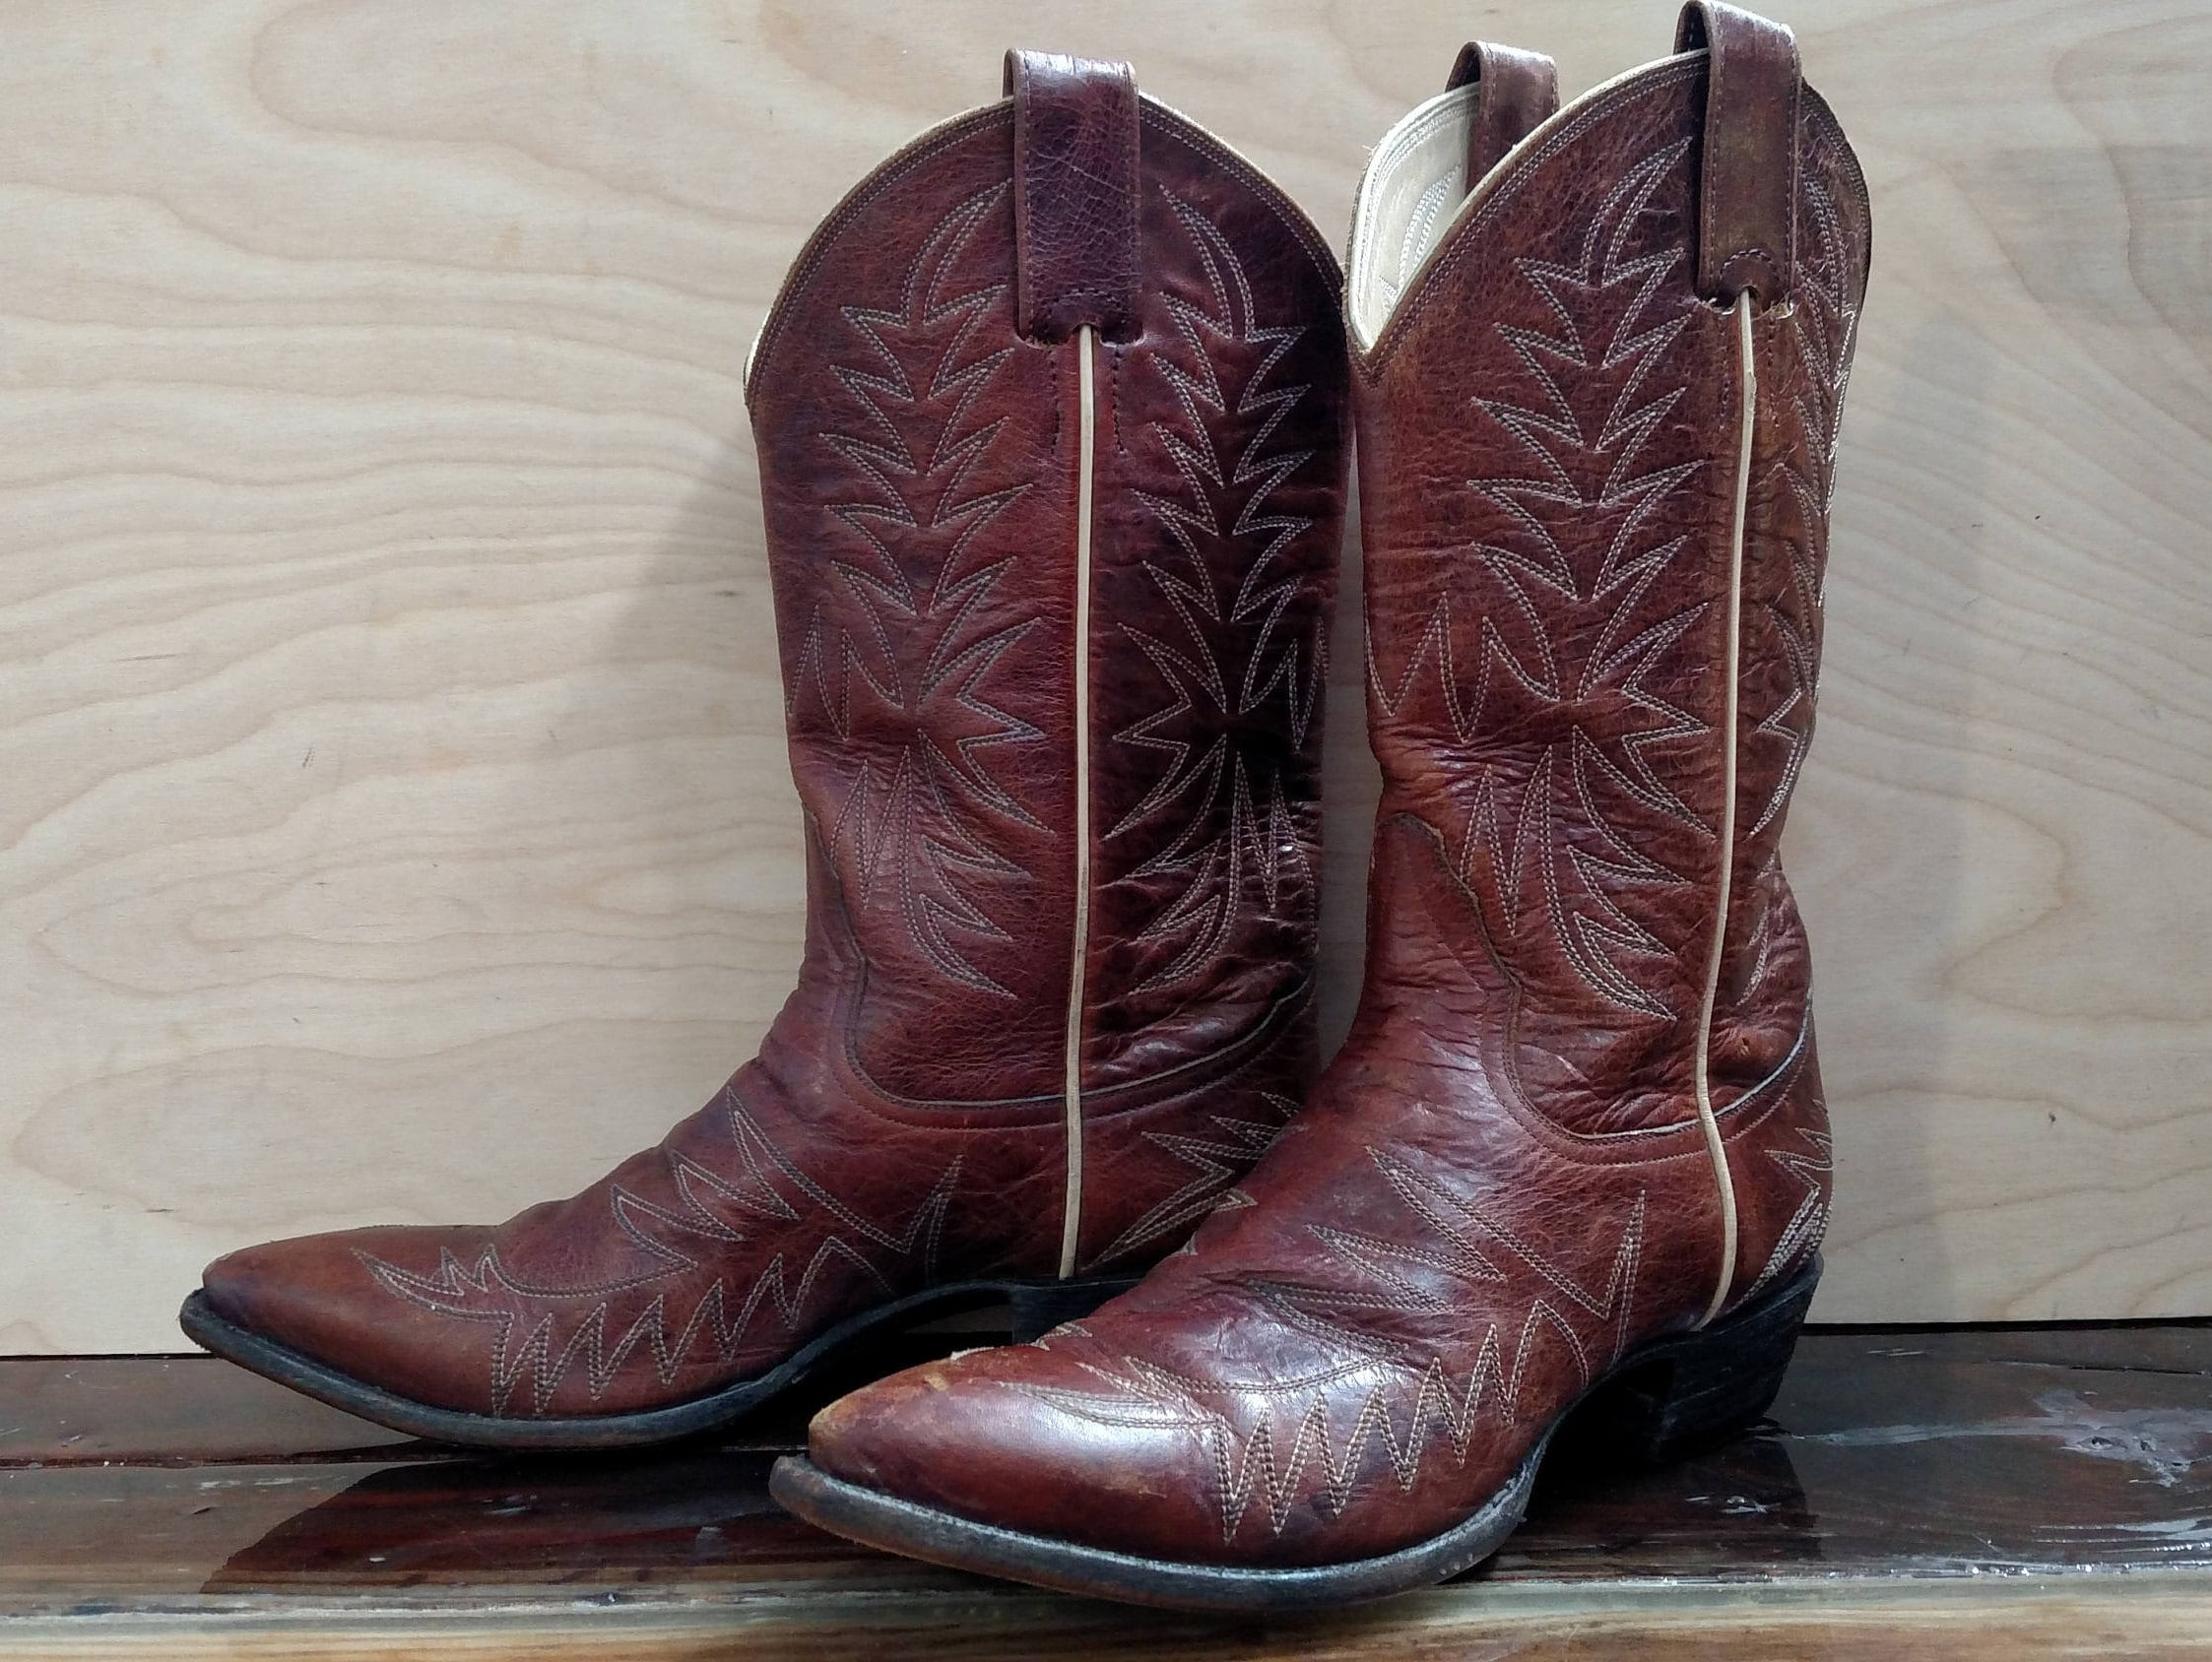 c9bcfce44c8 LARRY MAHAN Vintage Women's Boots Size 6.5 B..Brown Leather with  Top-Stitching..Made in El Paso Texas